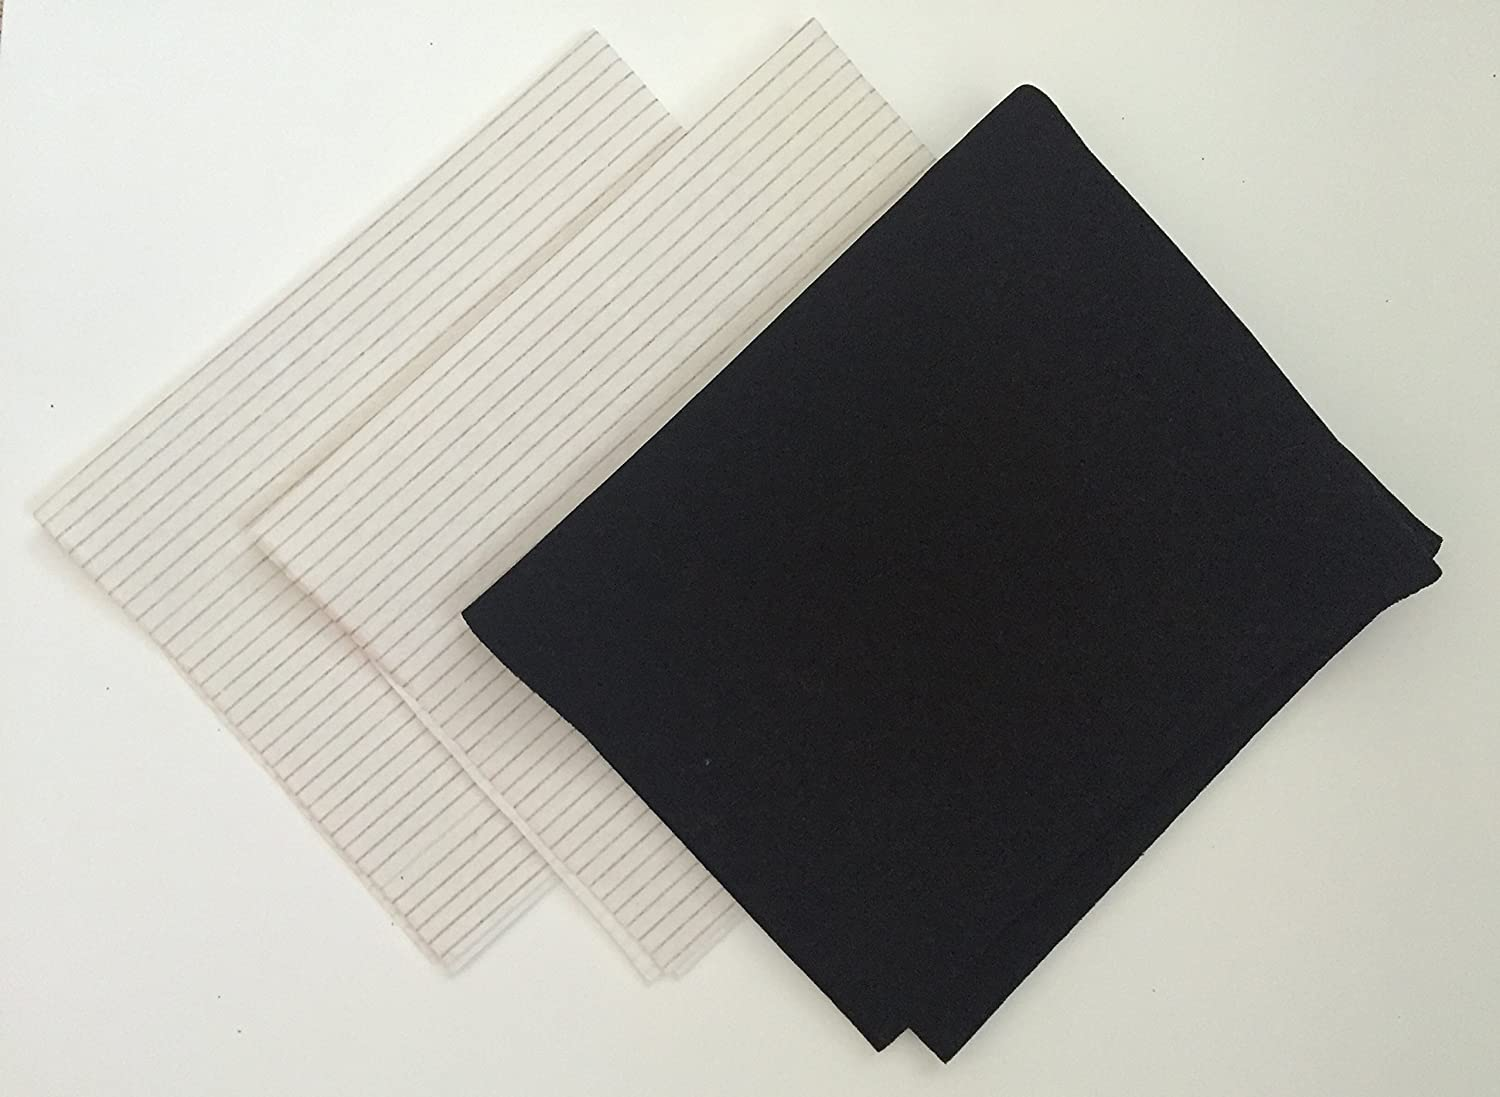 Grease and Carbon Set Cooker Hood Filter - Cut to Size - Vent Filters for Bosch, Neff, Candy, Hotpoint, Stoves and More Filterwise